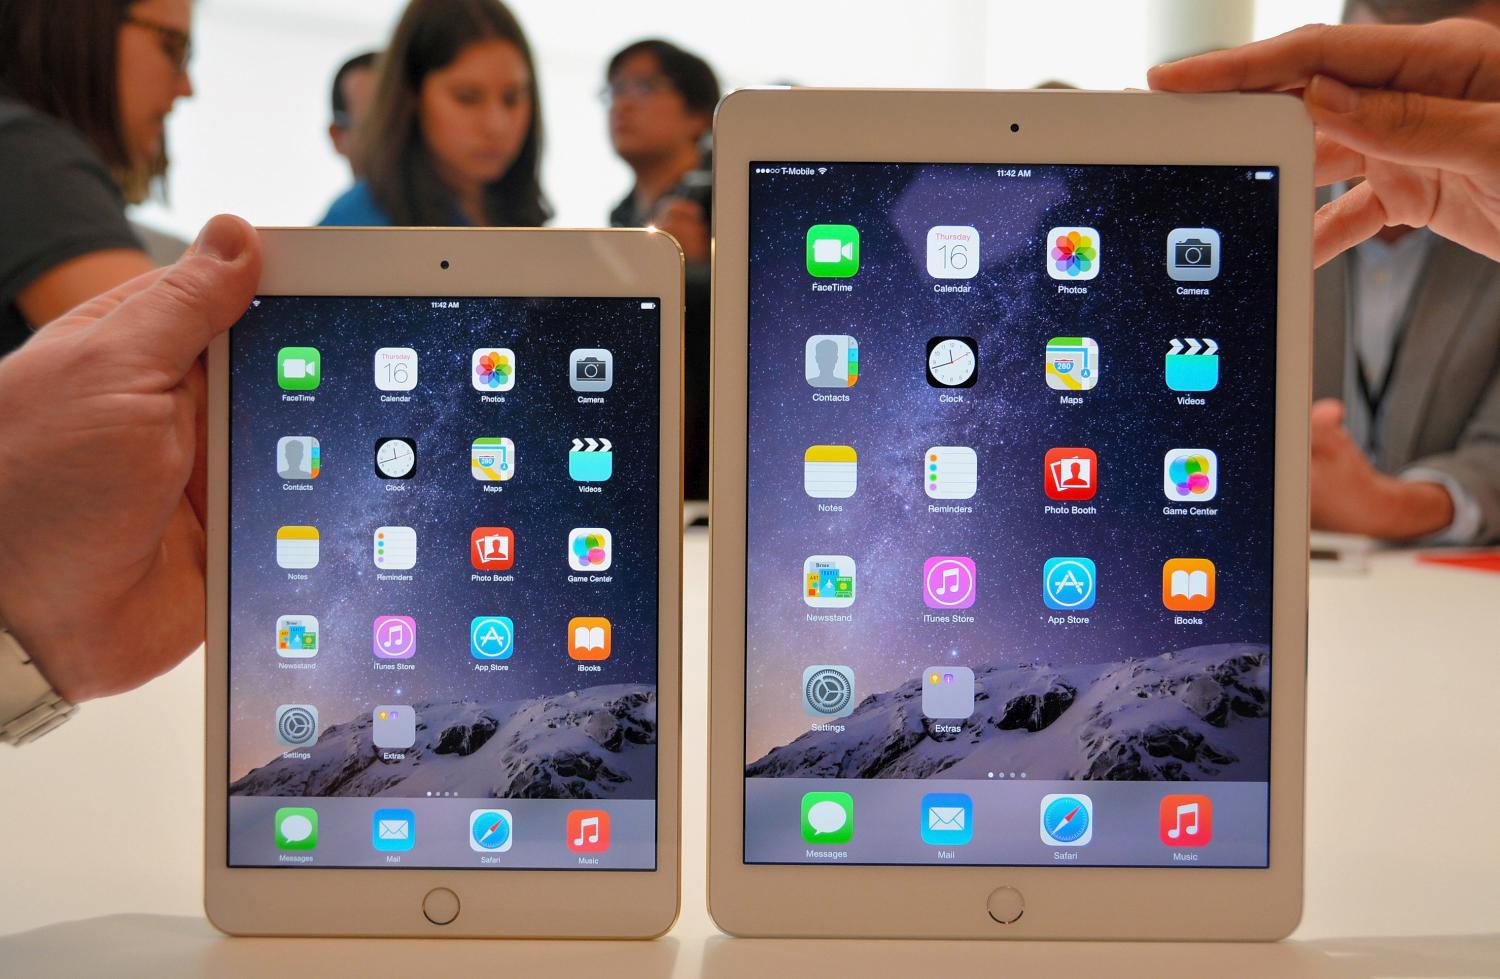 The iPad Mini 3 (left) and the iPad Air 2 (right)